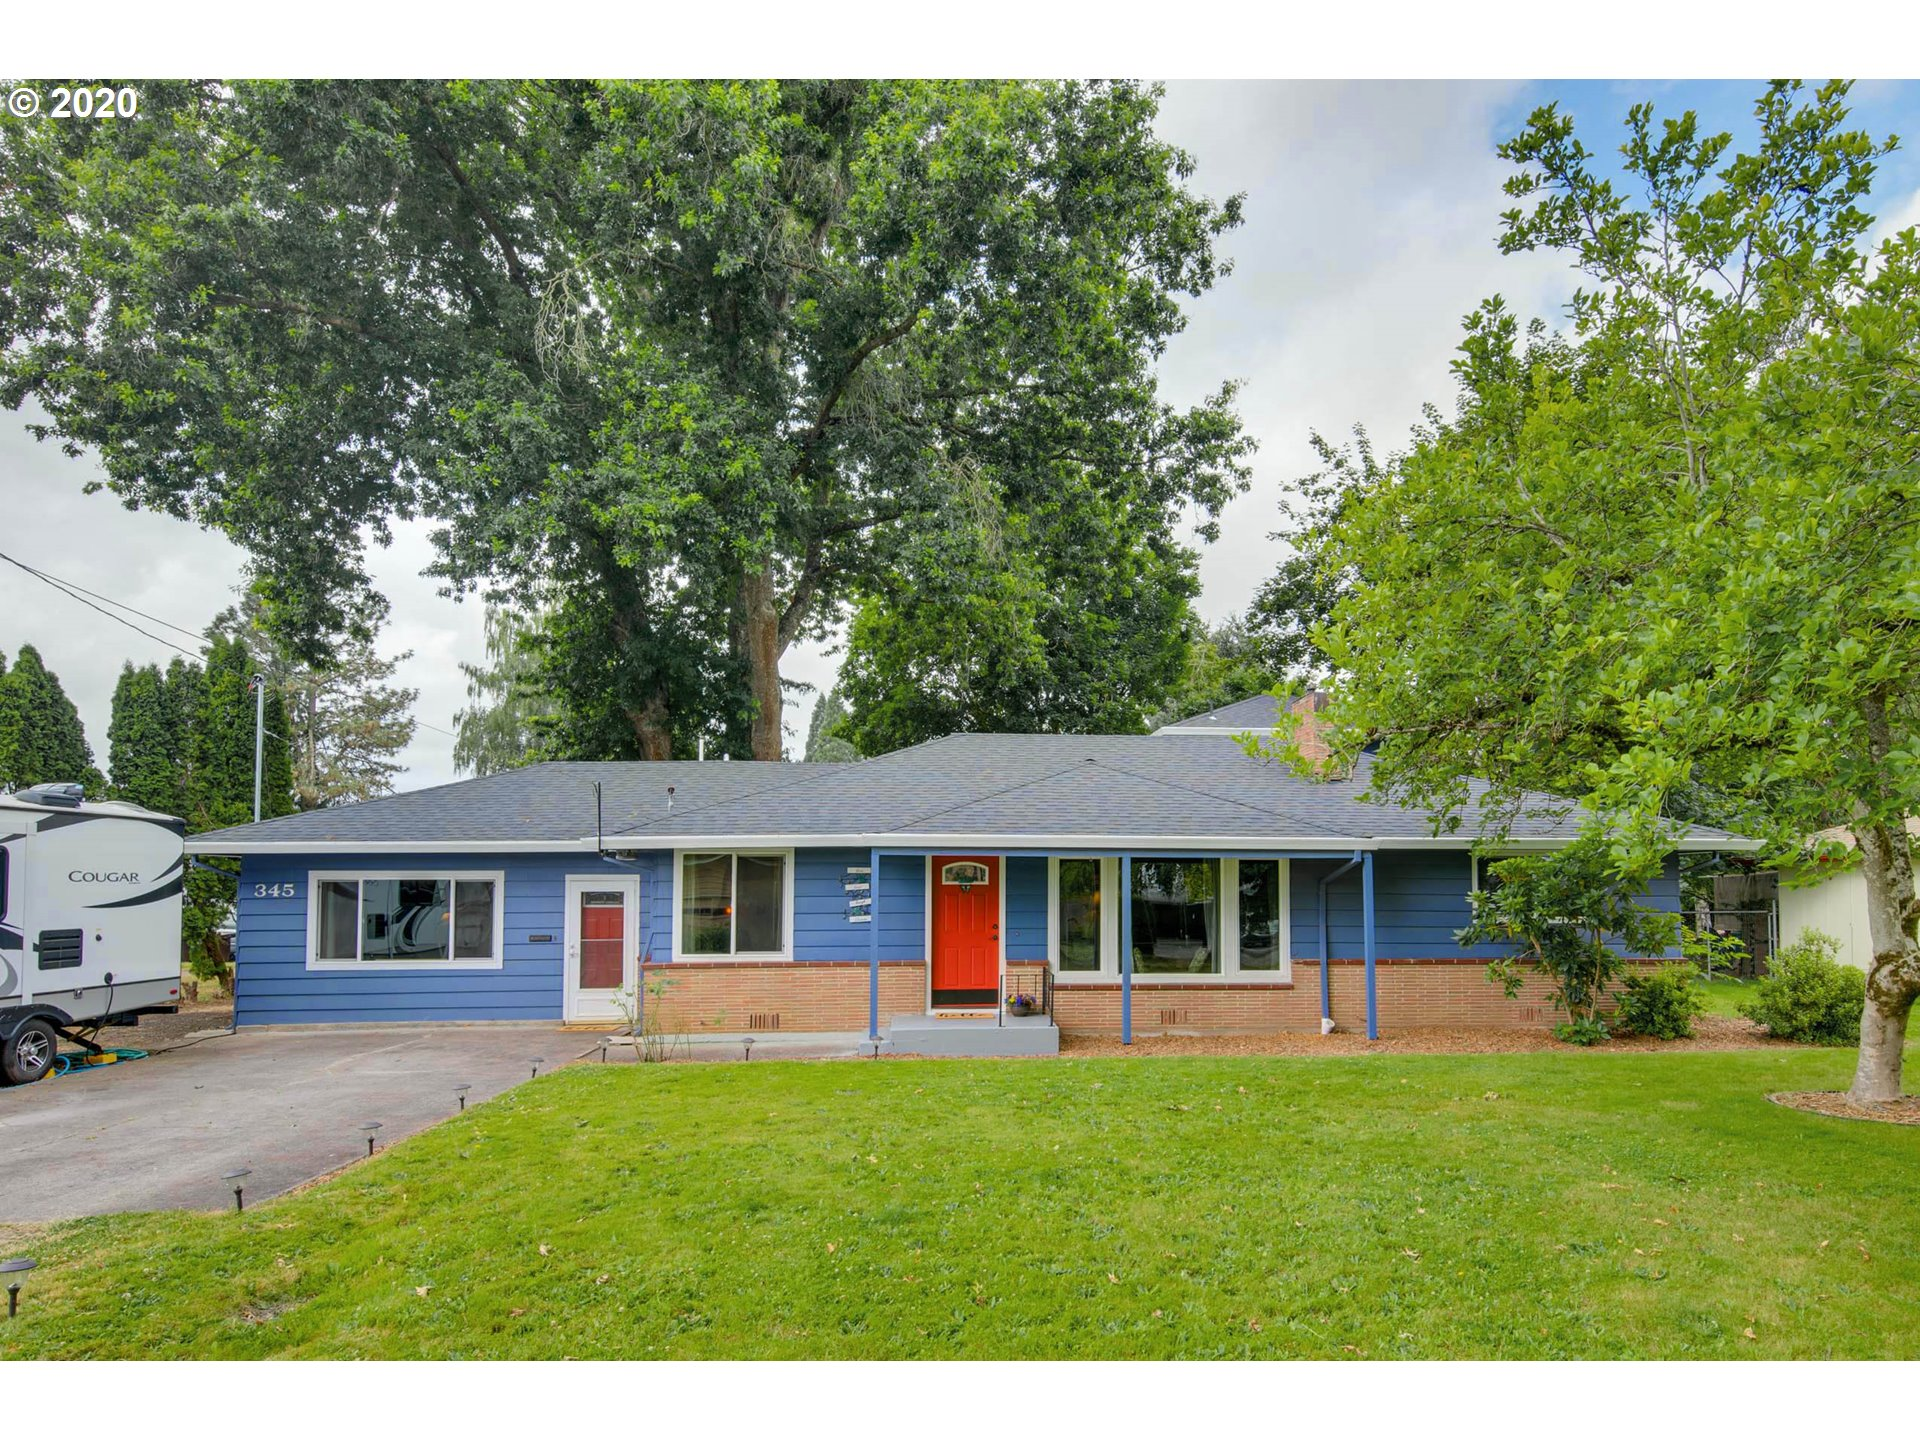 Photo of 345 NW 336TH AVE